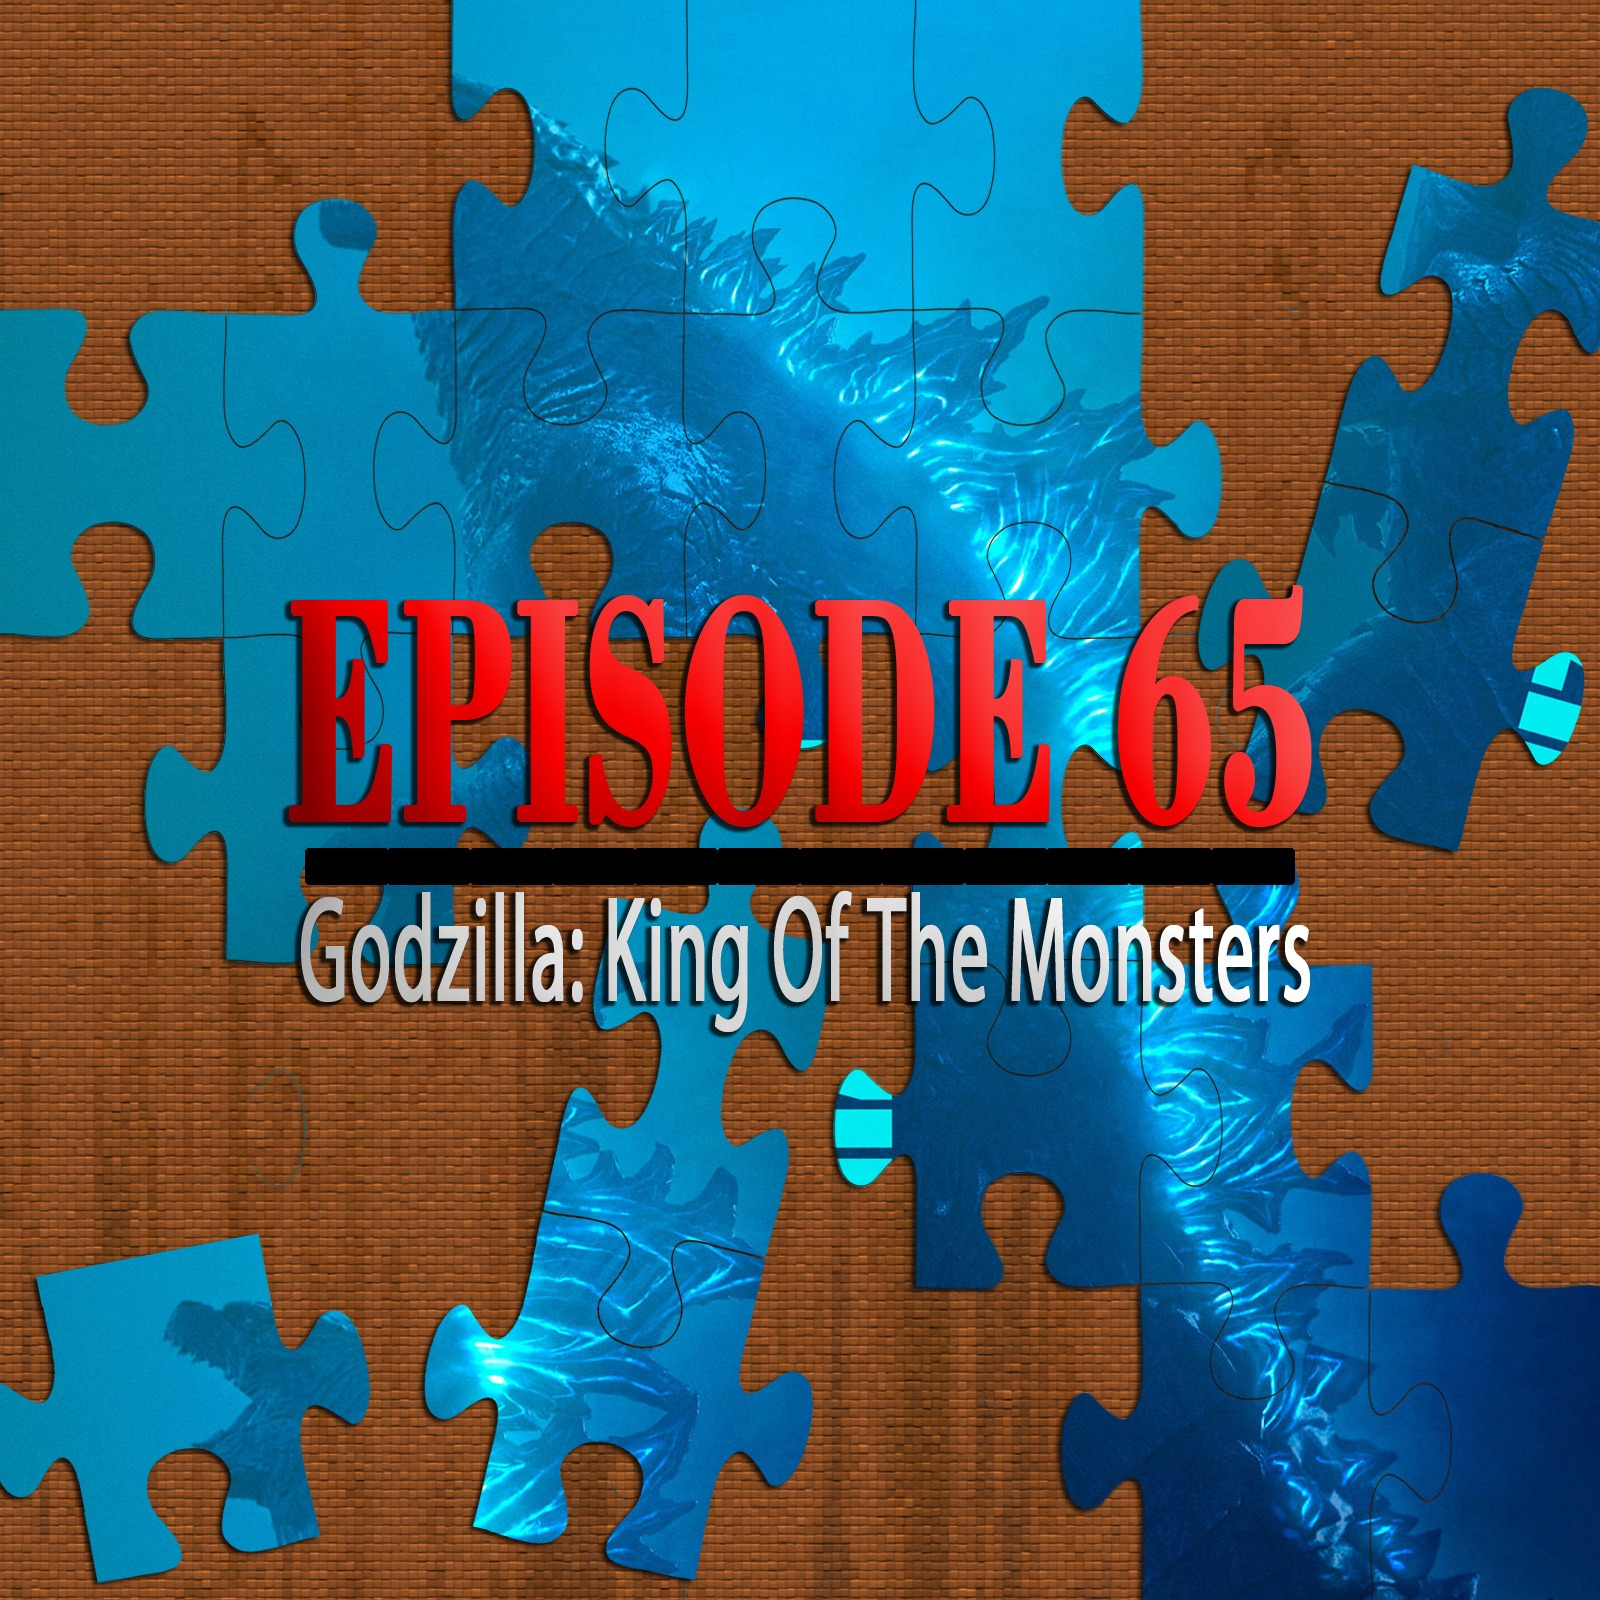 Godzilla: King of the Monsters (Featuring Chad Clinton Freeman & Ryan Daugherty)